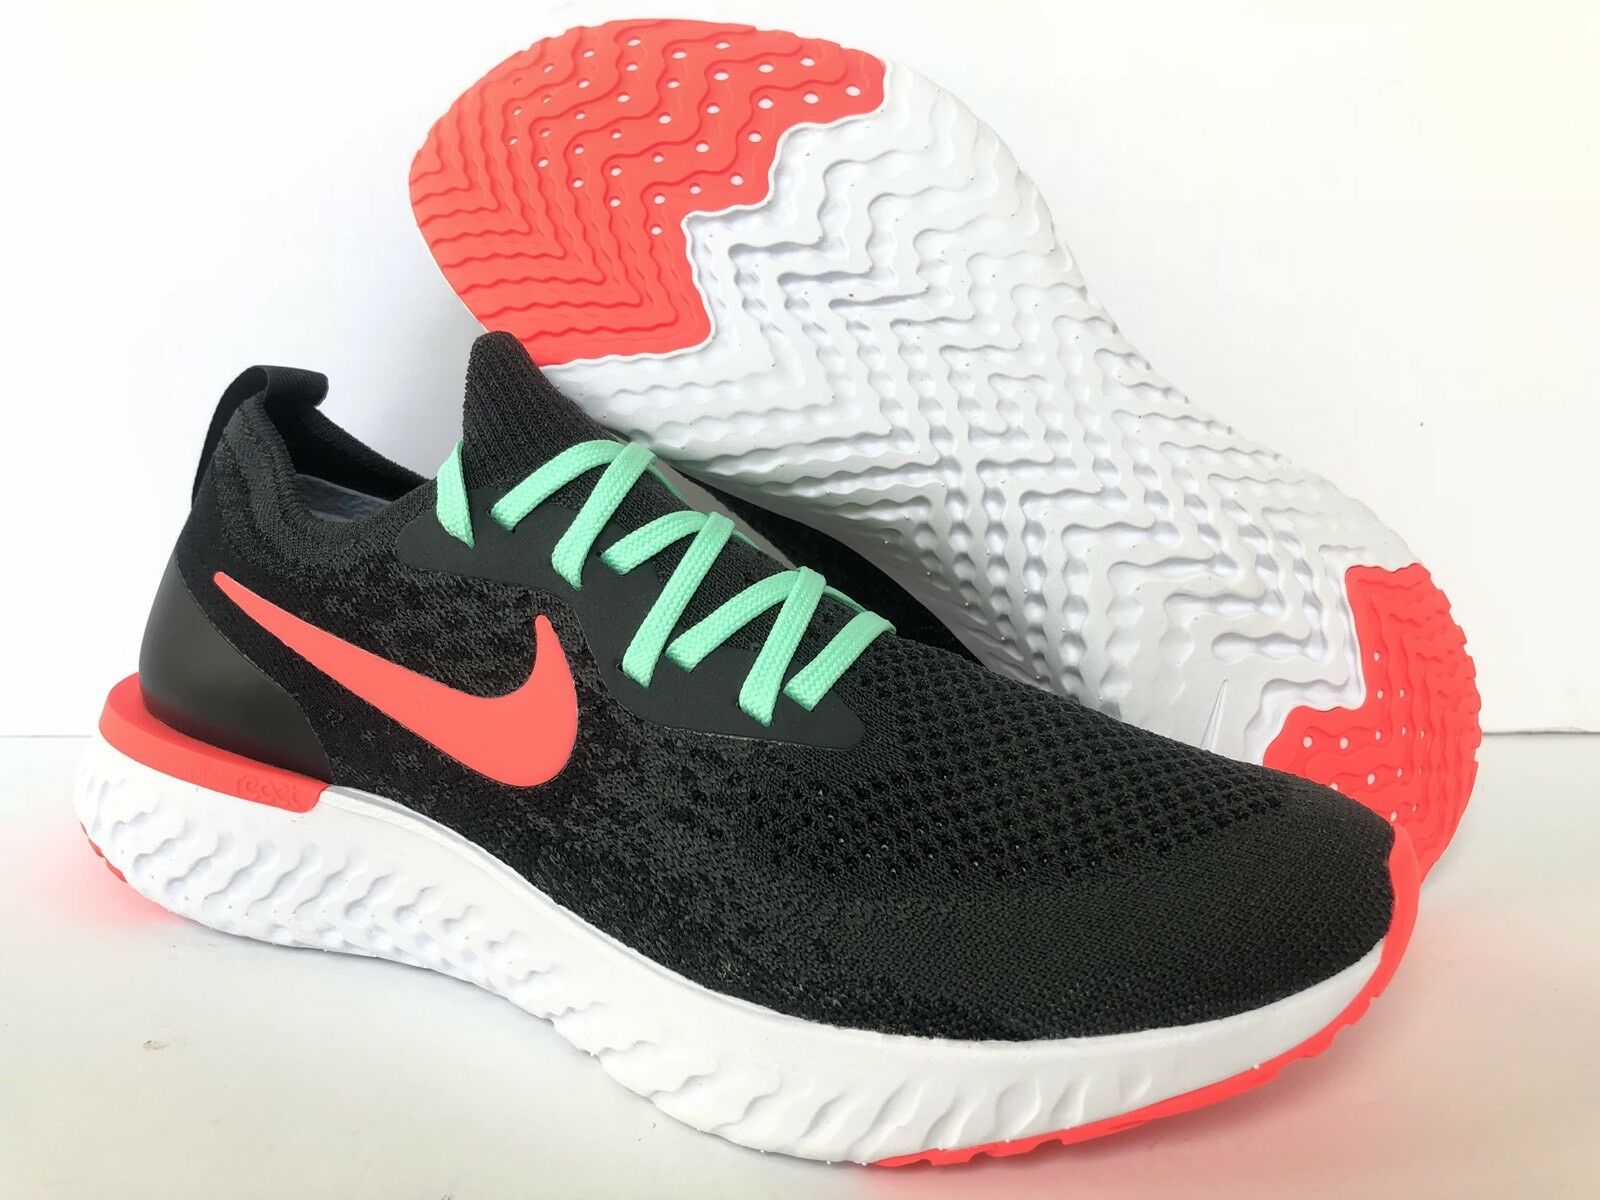 huge selection of 2a9ee 55128 NIKE iD EPIC REACT FLYKNIT BLACK SEA FOAM RED  AJ7283-994